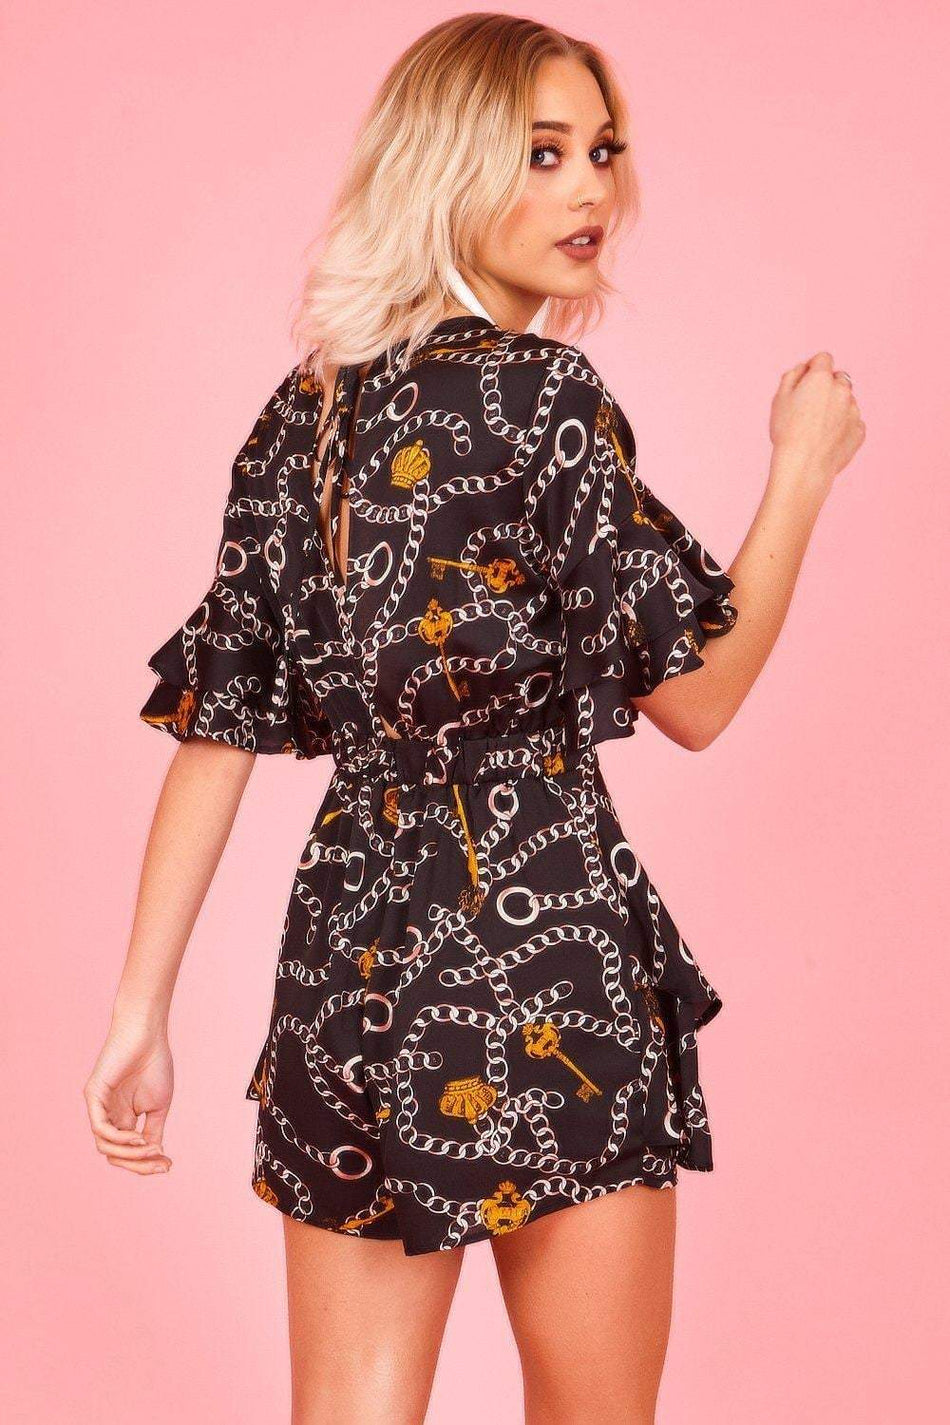 Black & Gold Frill Sleeve Baroque Playsuit - KATCH ME